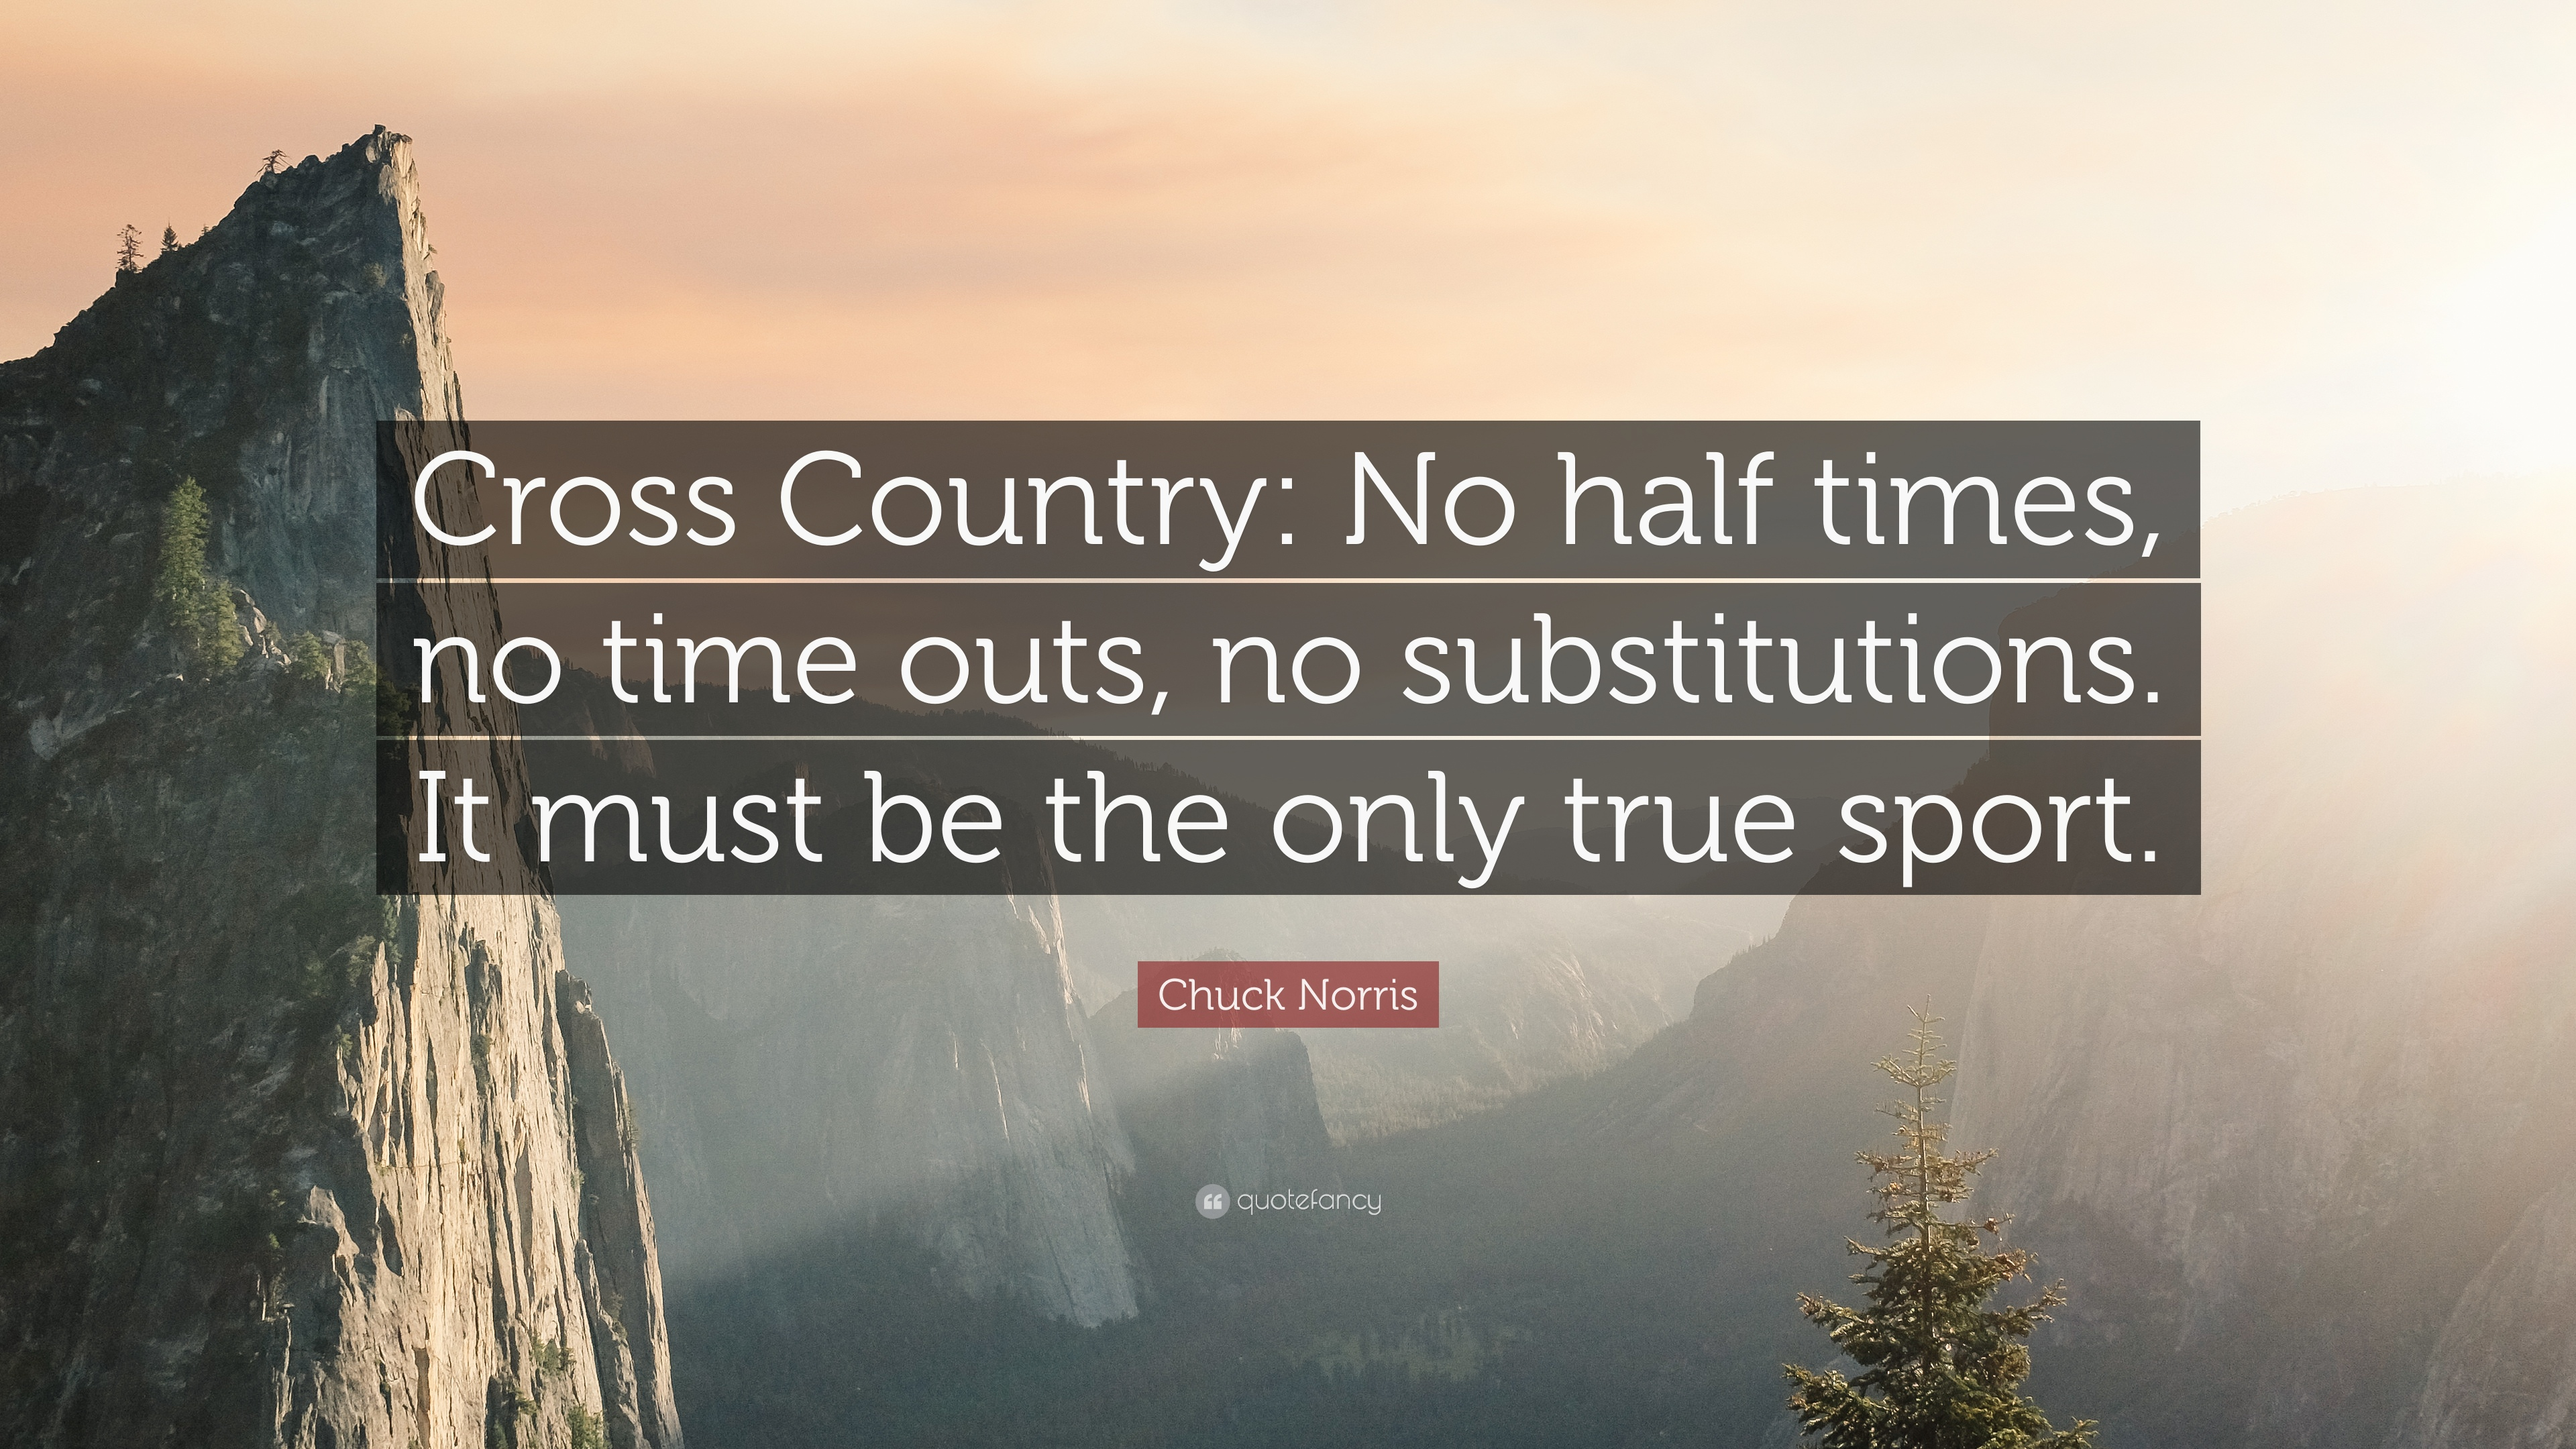 Chuck Norris Quote Cross Country No Half Times Time Outs